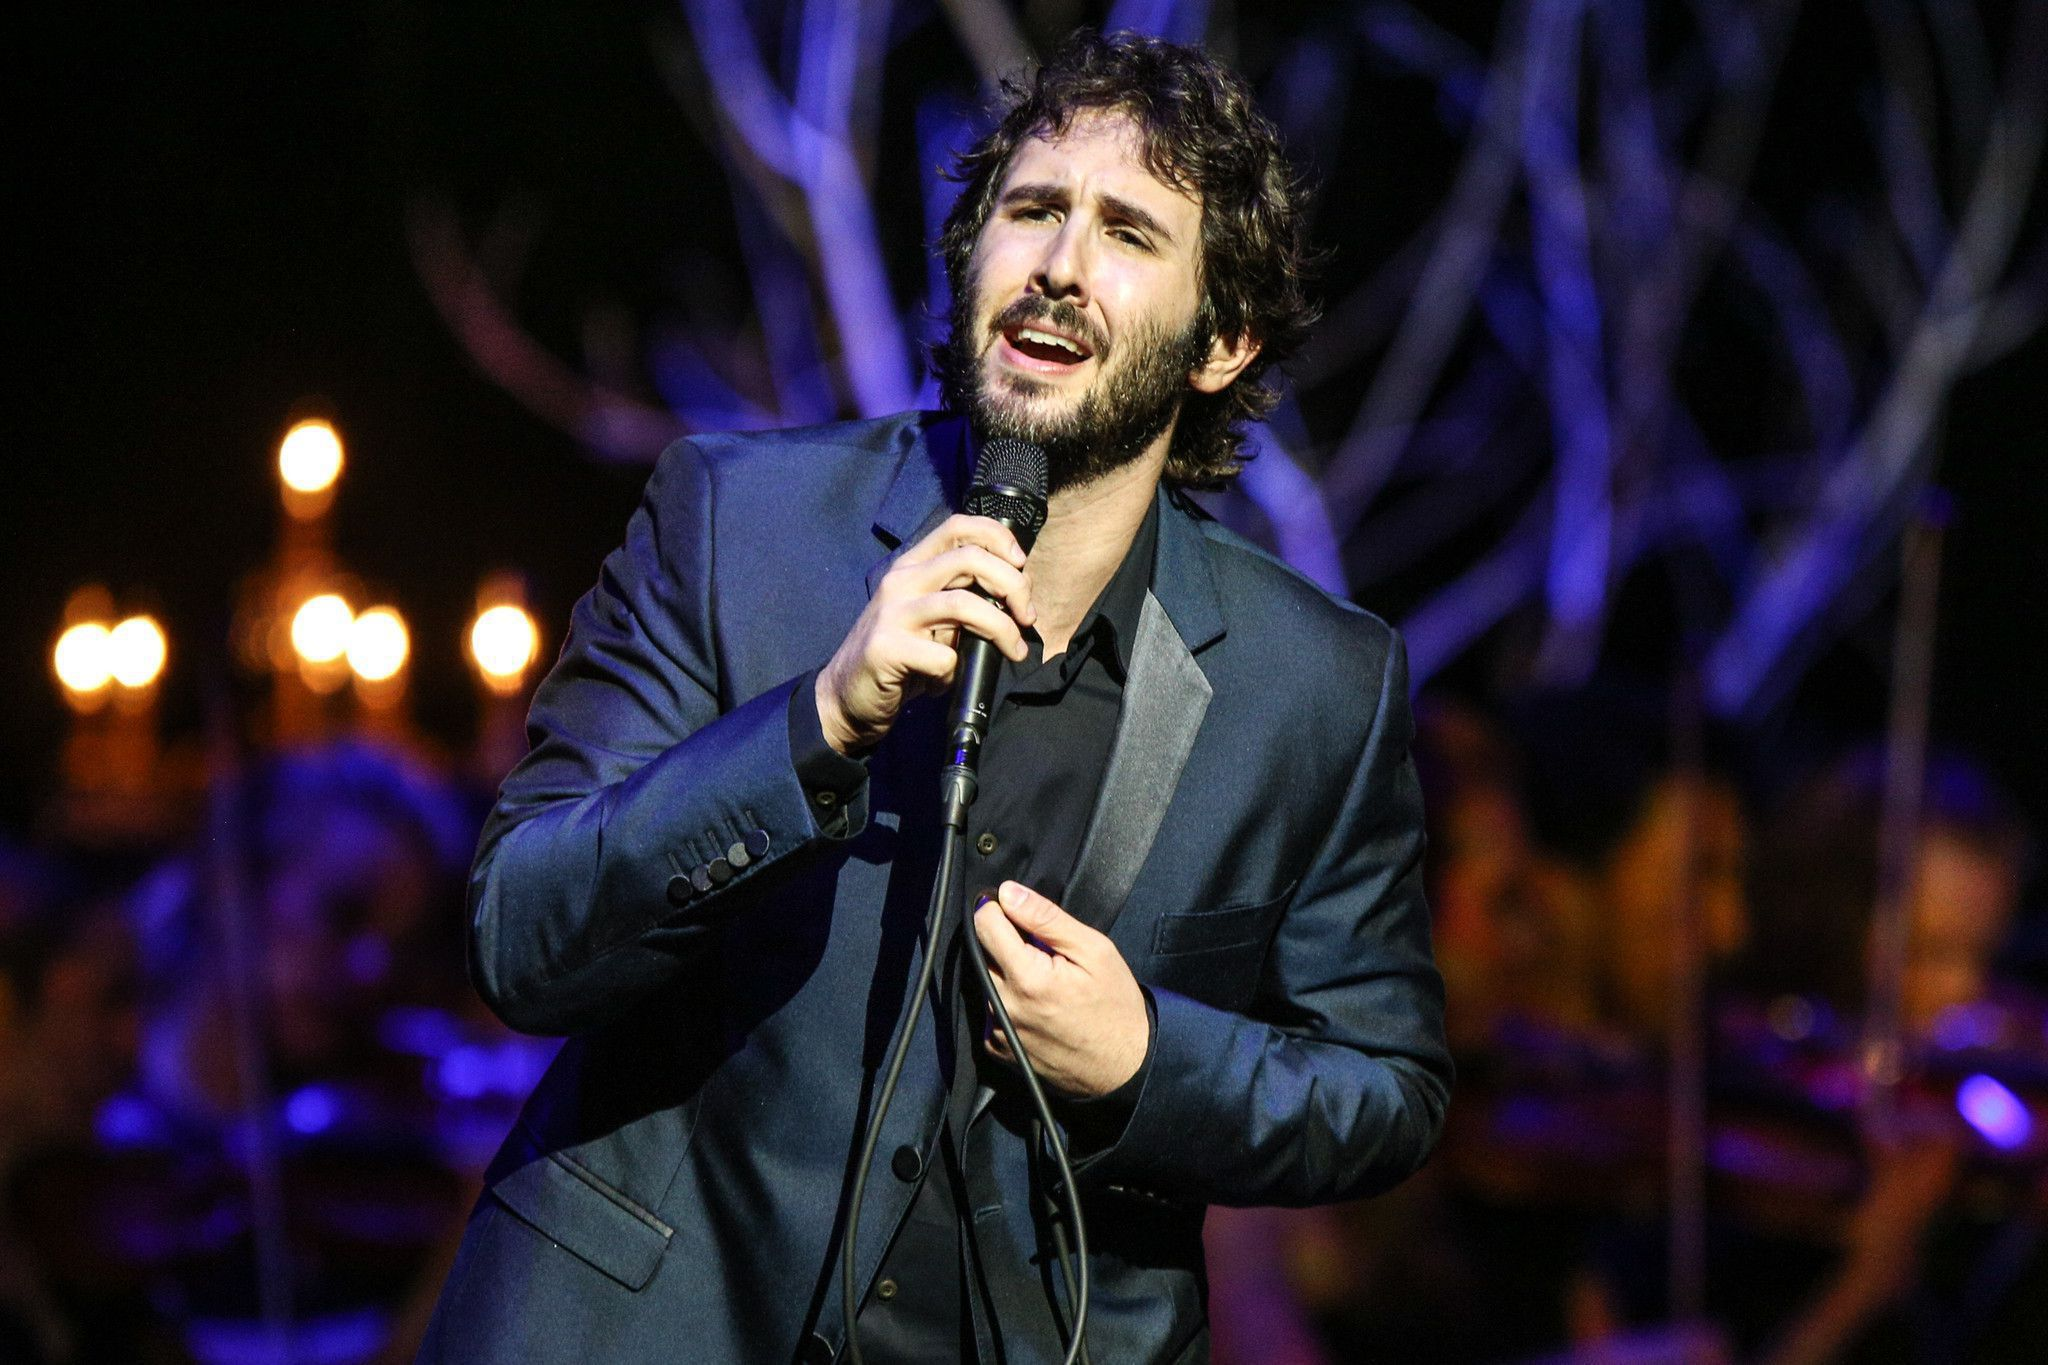 Josh groban's first christmas concert will be live streamed